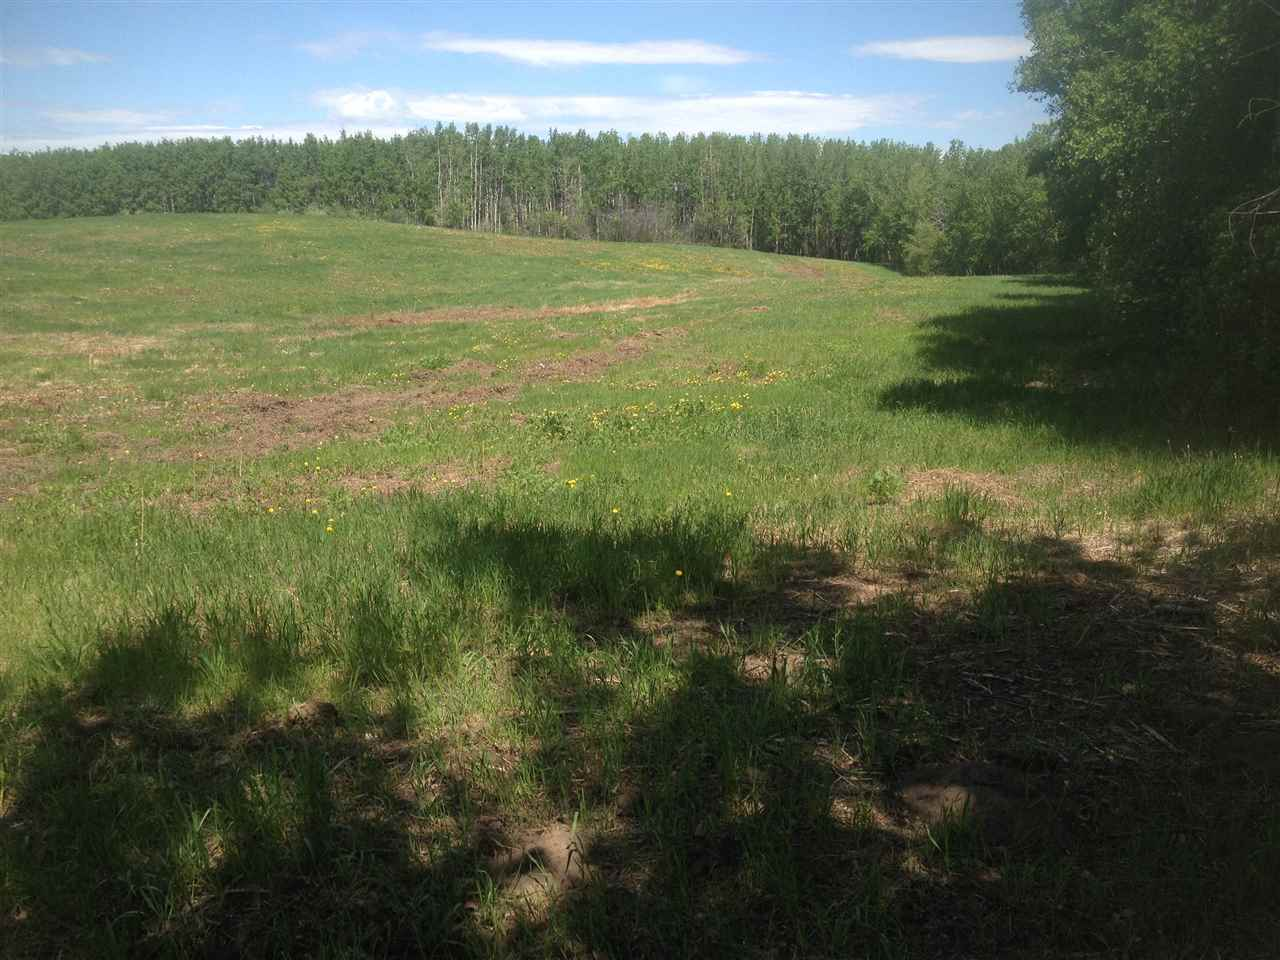 Photo 6: 52502 Range Road 22A: Rural Parkland County Rural Land/Vacant Lot for sale : MLS® # E4069524